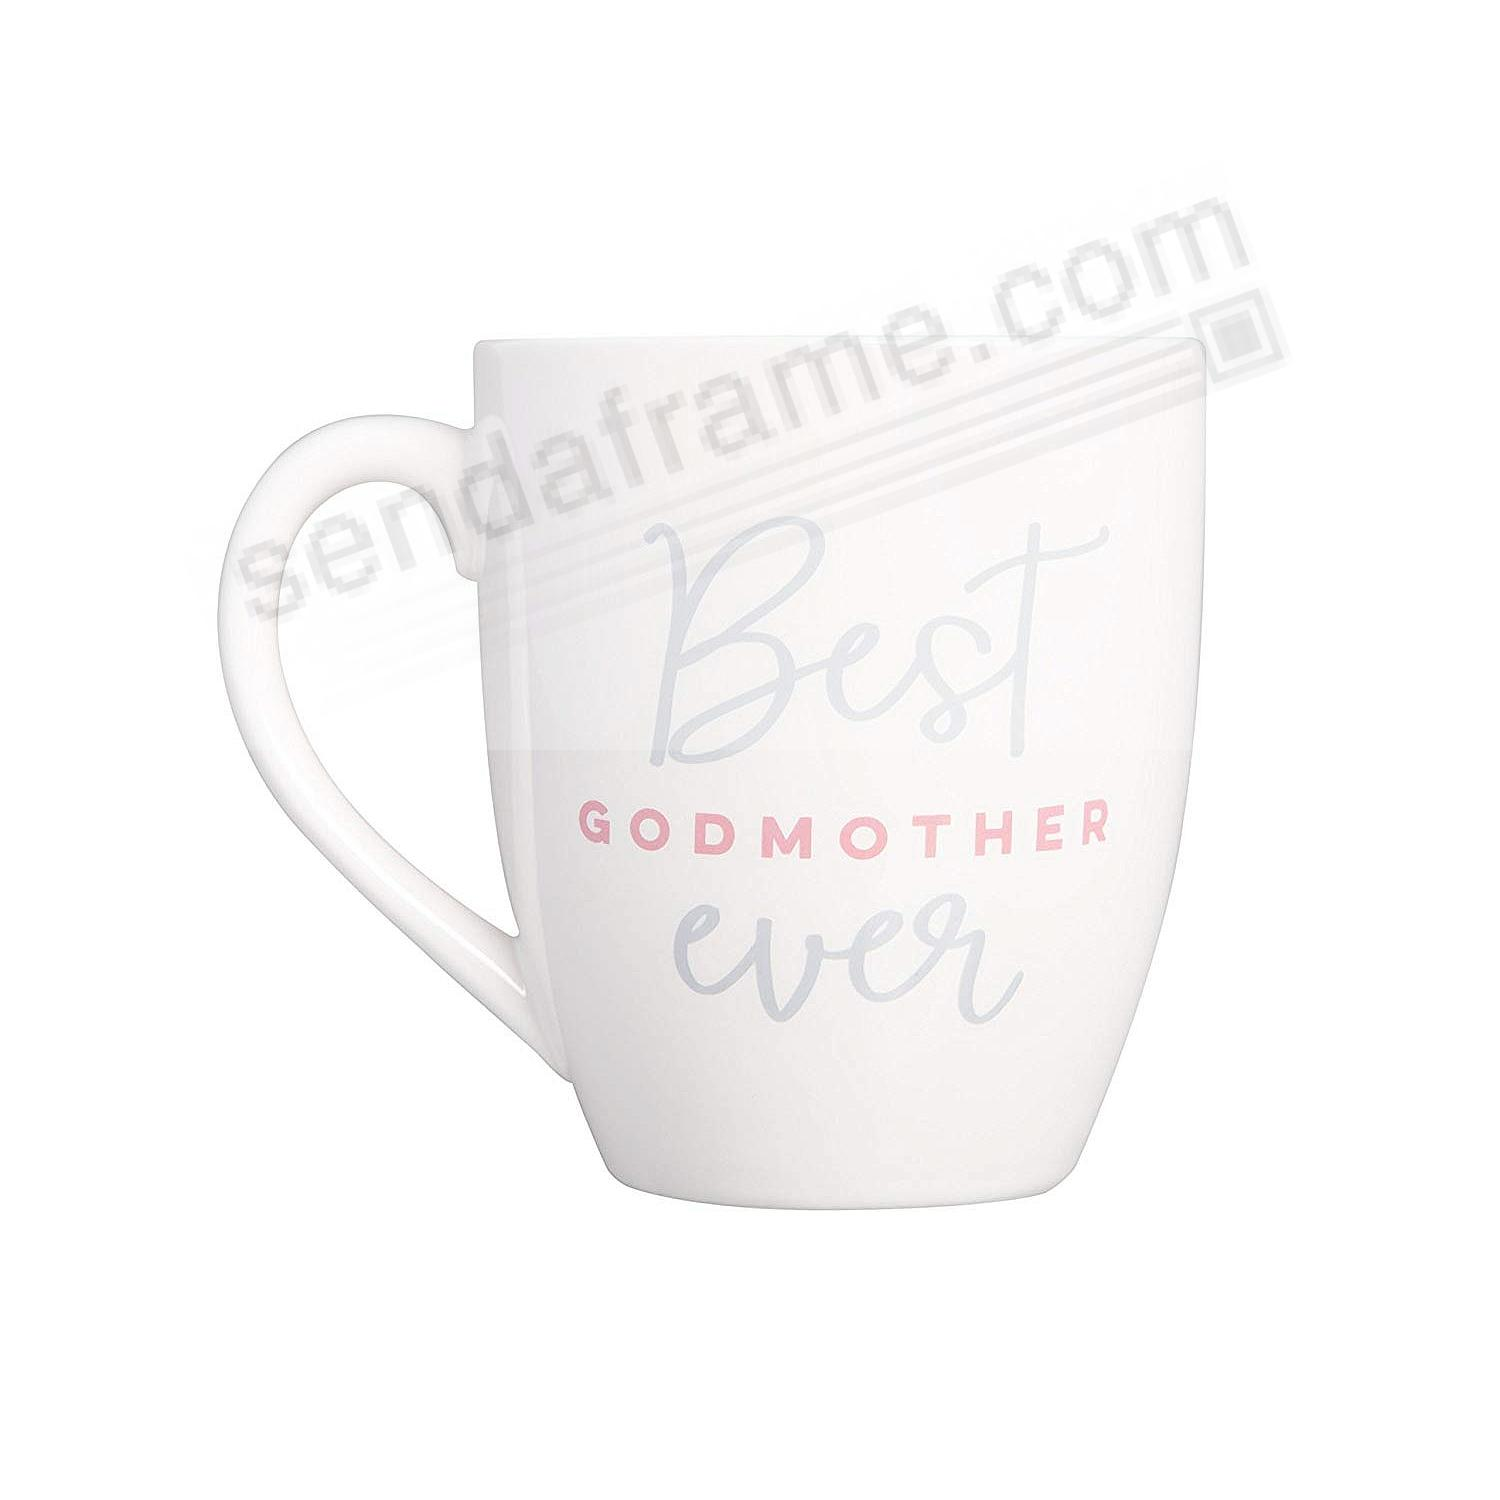 BEST GODMOTHER EVER Coffee Mug by Pearhead®